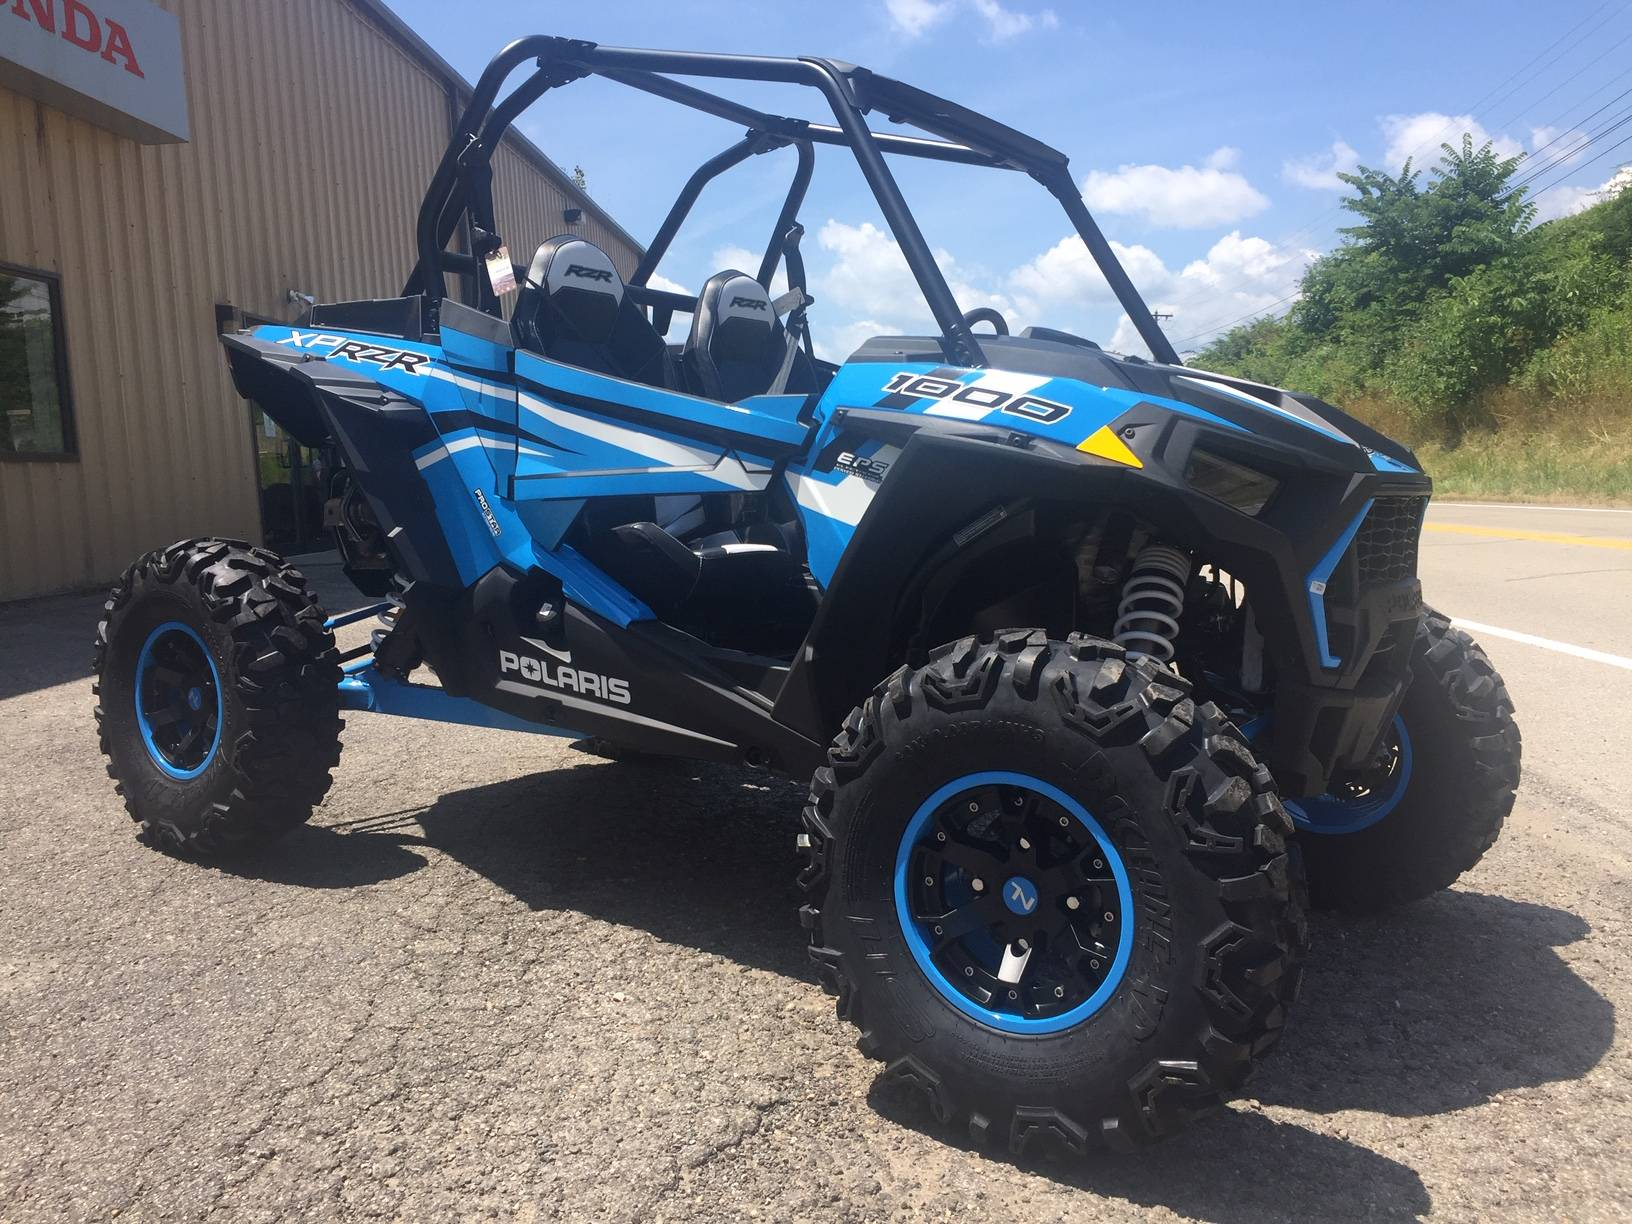 2019 Polaris RZR XP 1000 in Claysville, Pennsylvania - Photo 3